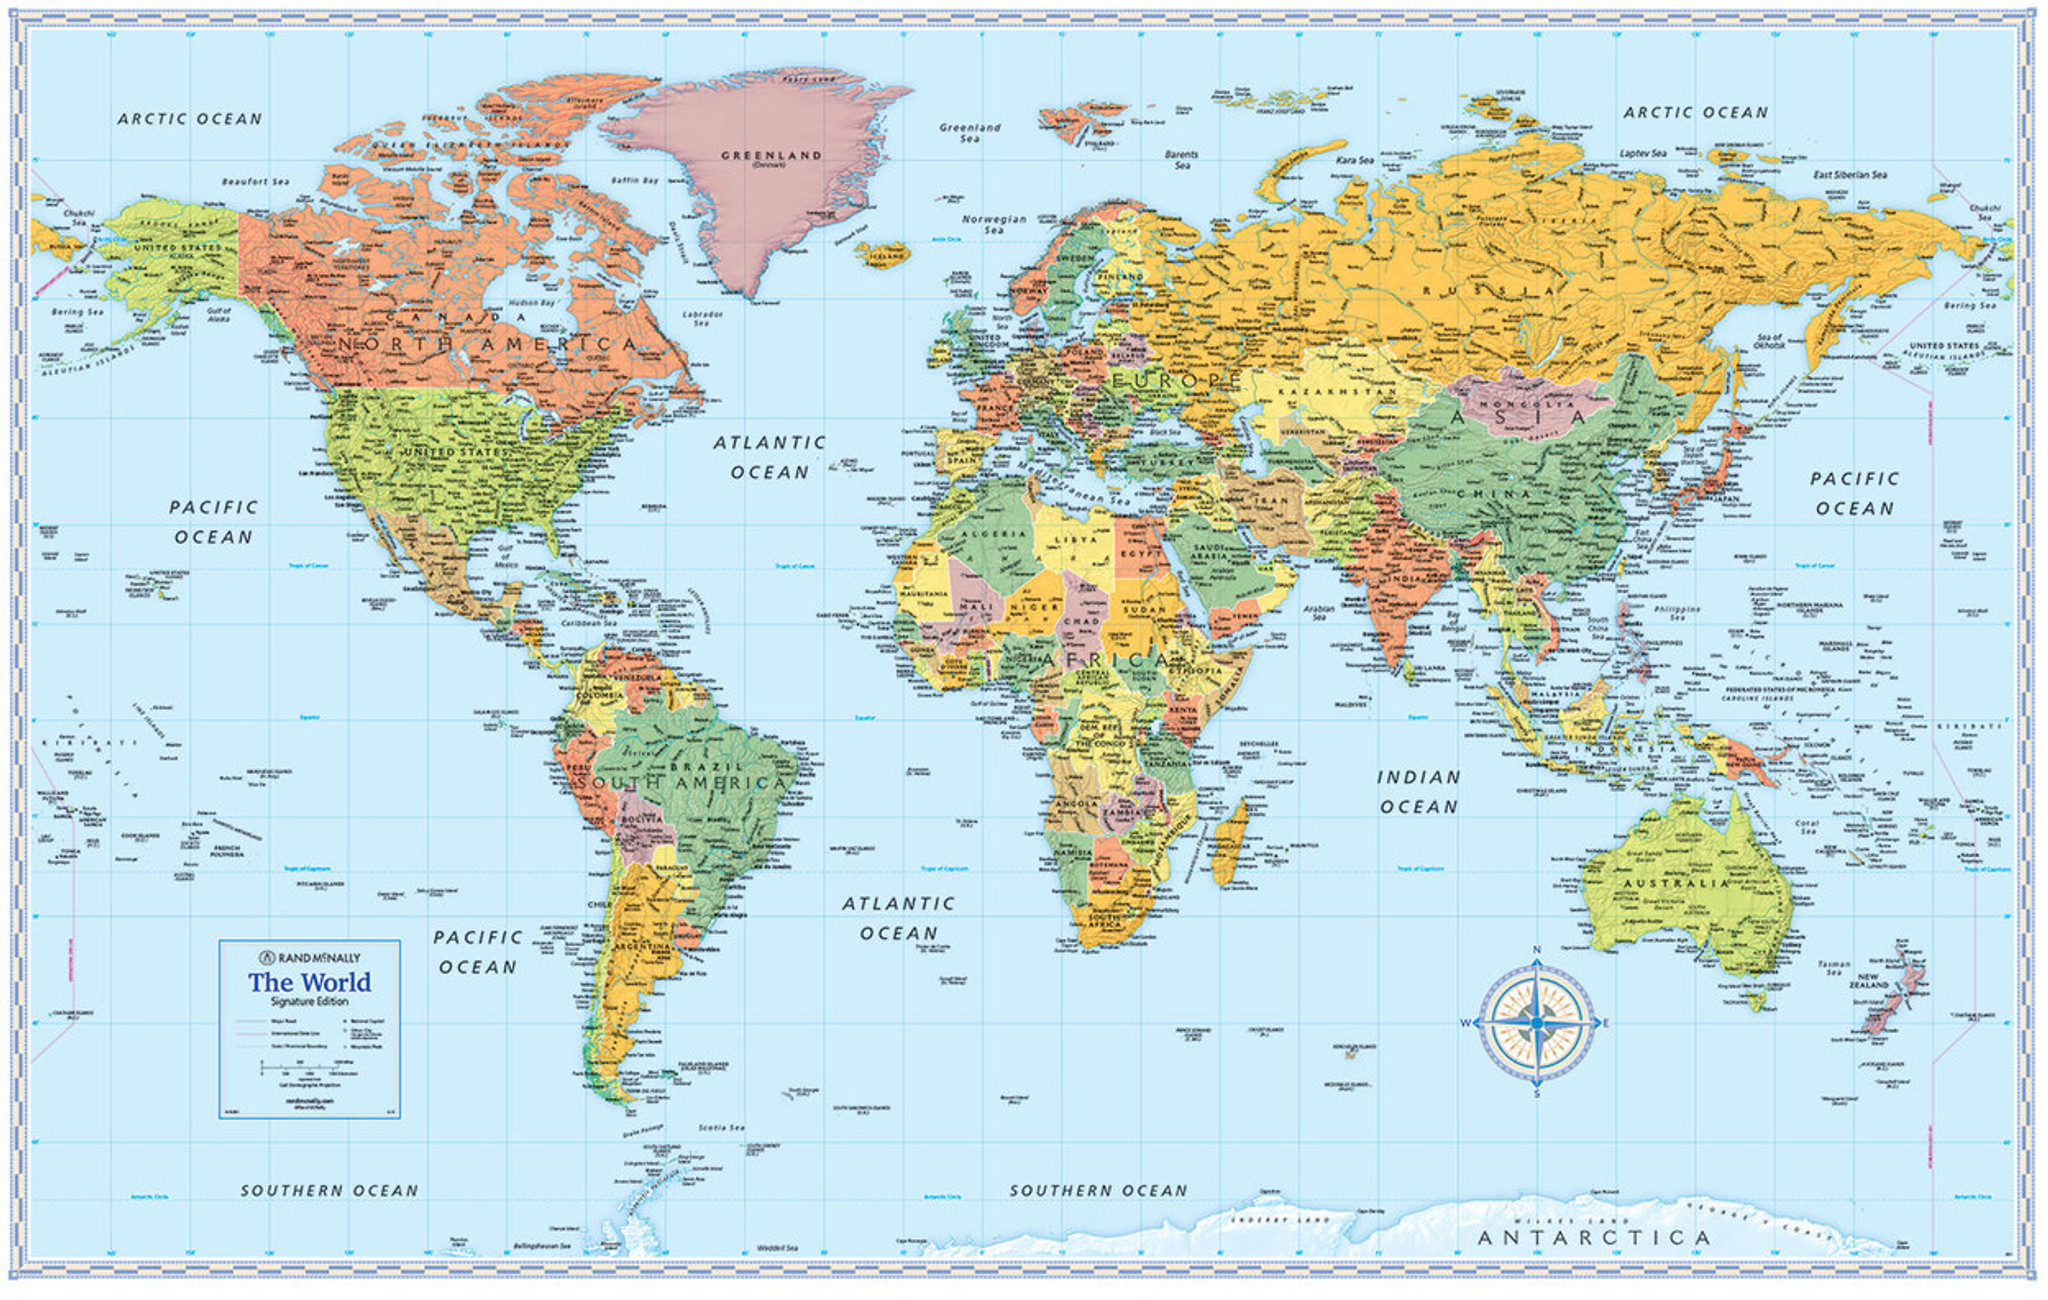 Wall Map Of The World Signature Edition World Wall Maps   Rand McNally Store